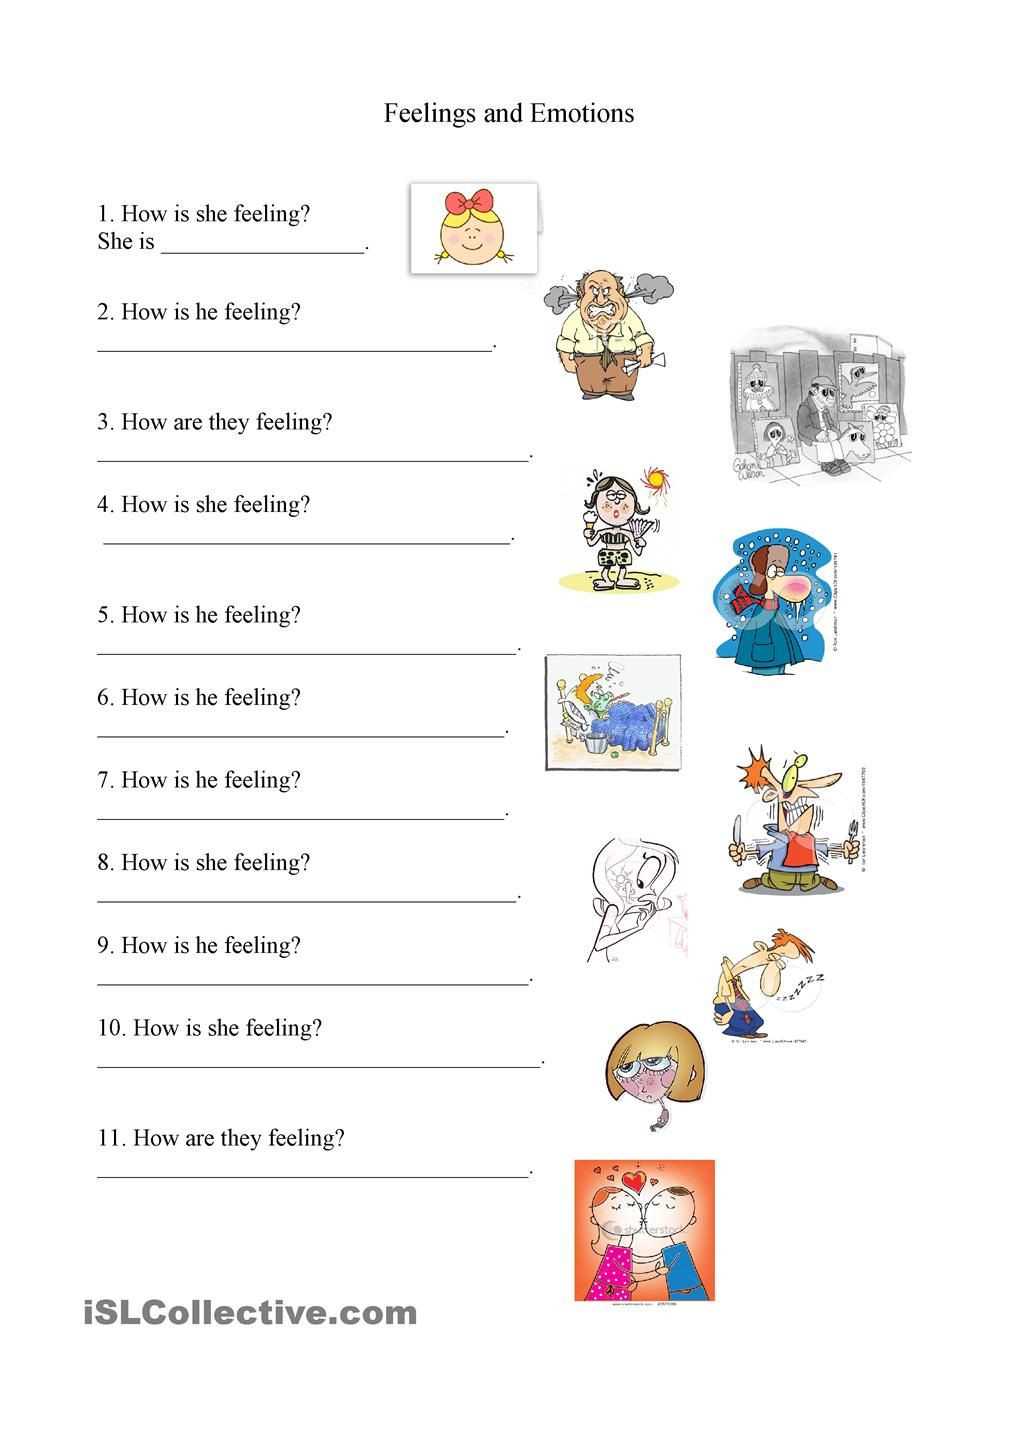 Feelings and Emotions Worksheets Printable Feelings and Emotions Worksheet